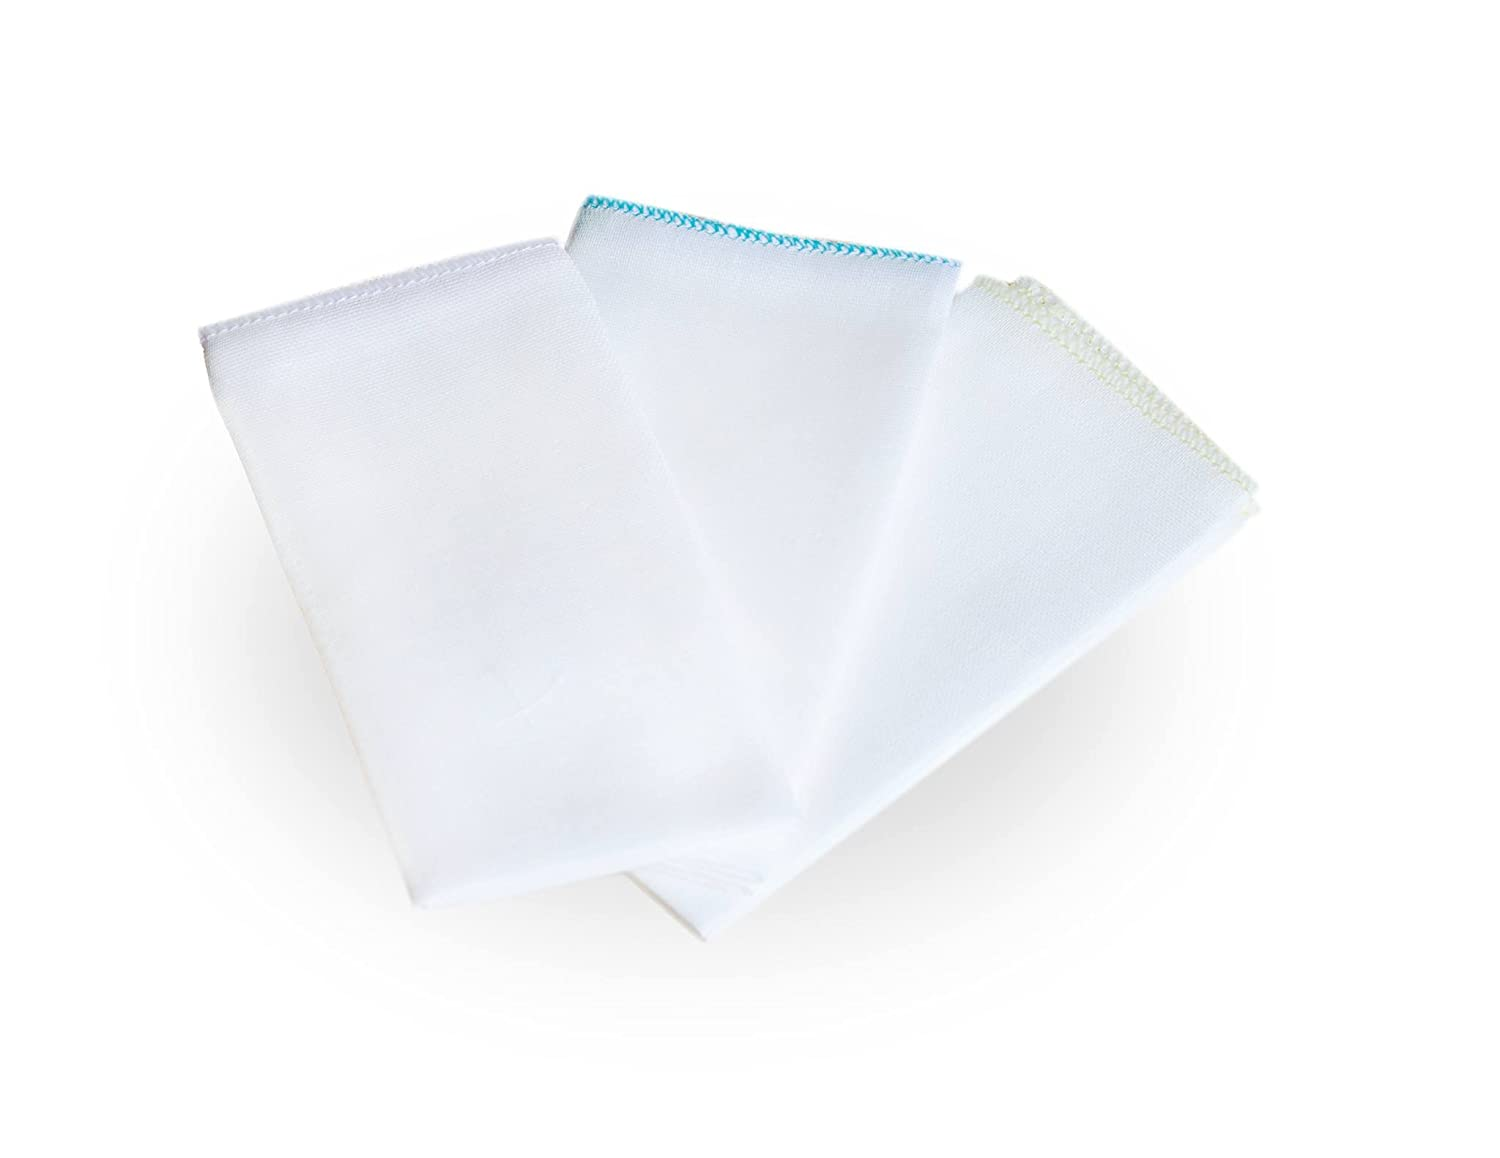 3x Cotton Soft Facial Cleansing Muslin Cloths Remove Makeup Tool PREMIUM PureClean